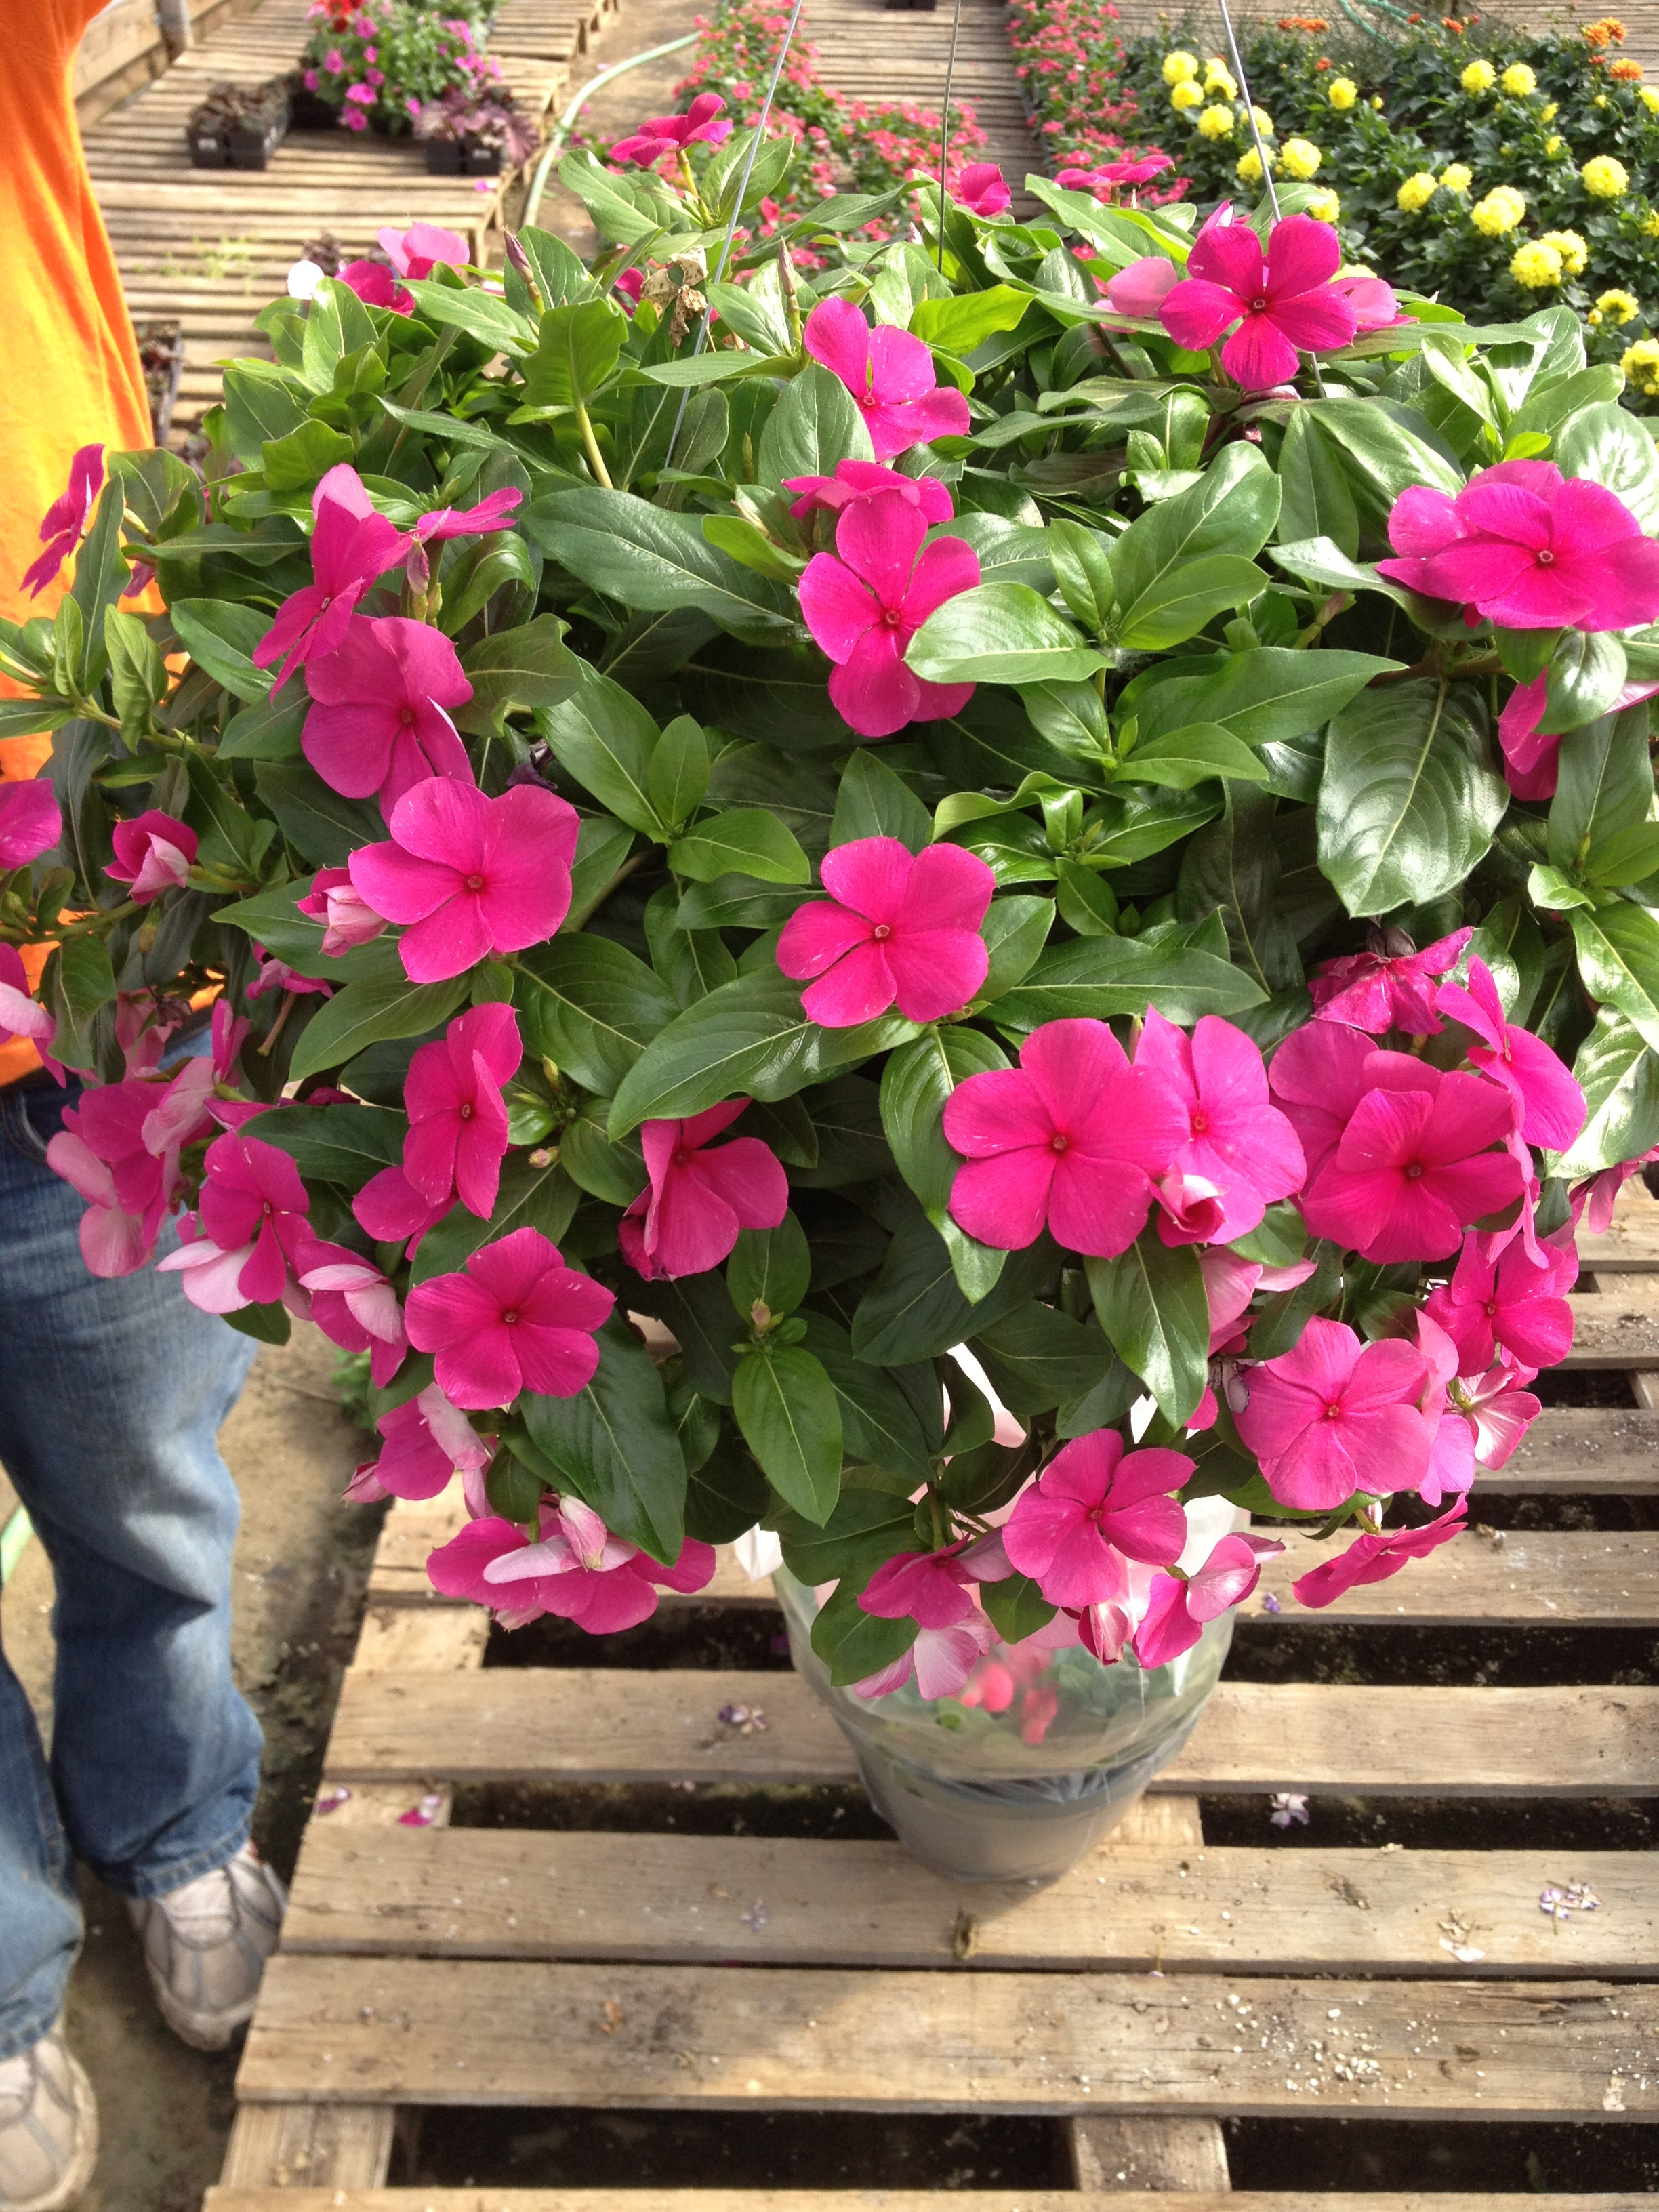 Cascade and Cora vinca are two very popular landscape items. Cascade Vinca has a habit that trails and Cora Vinca is more upright. They both do extremely well during the summer and do best when the temperatures are at their highest. They don't need as much water as an impatient and can tolerate full sun environments.